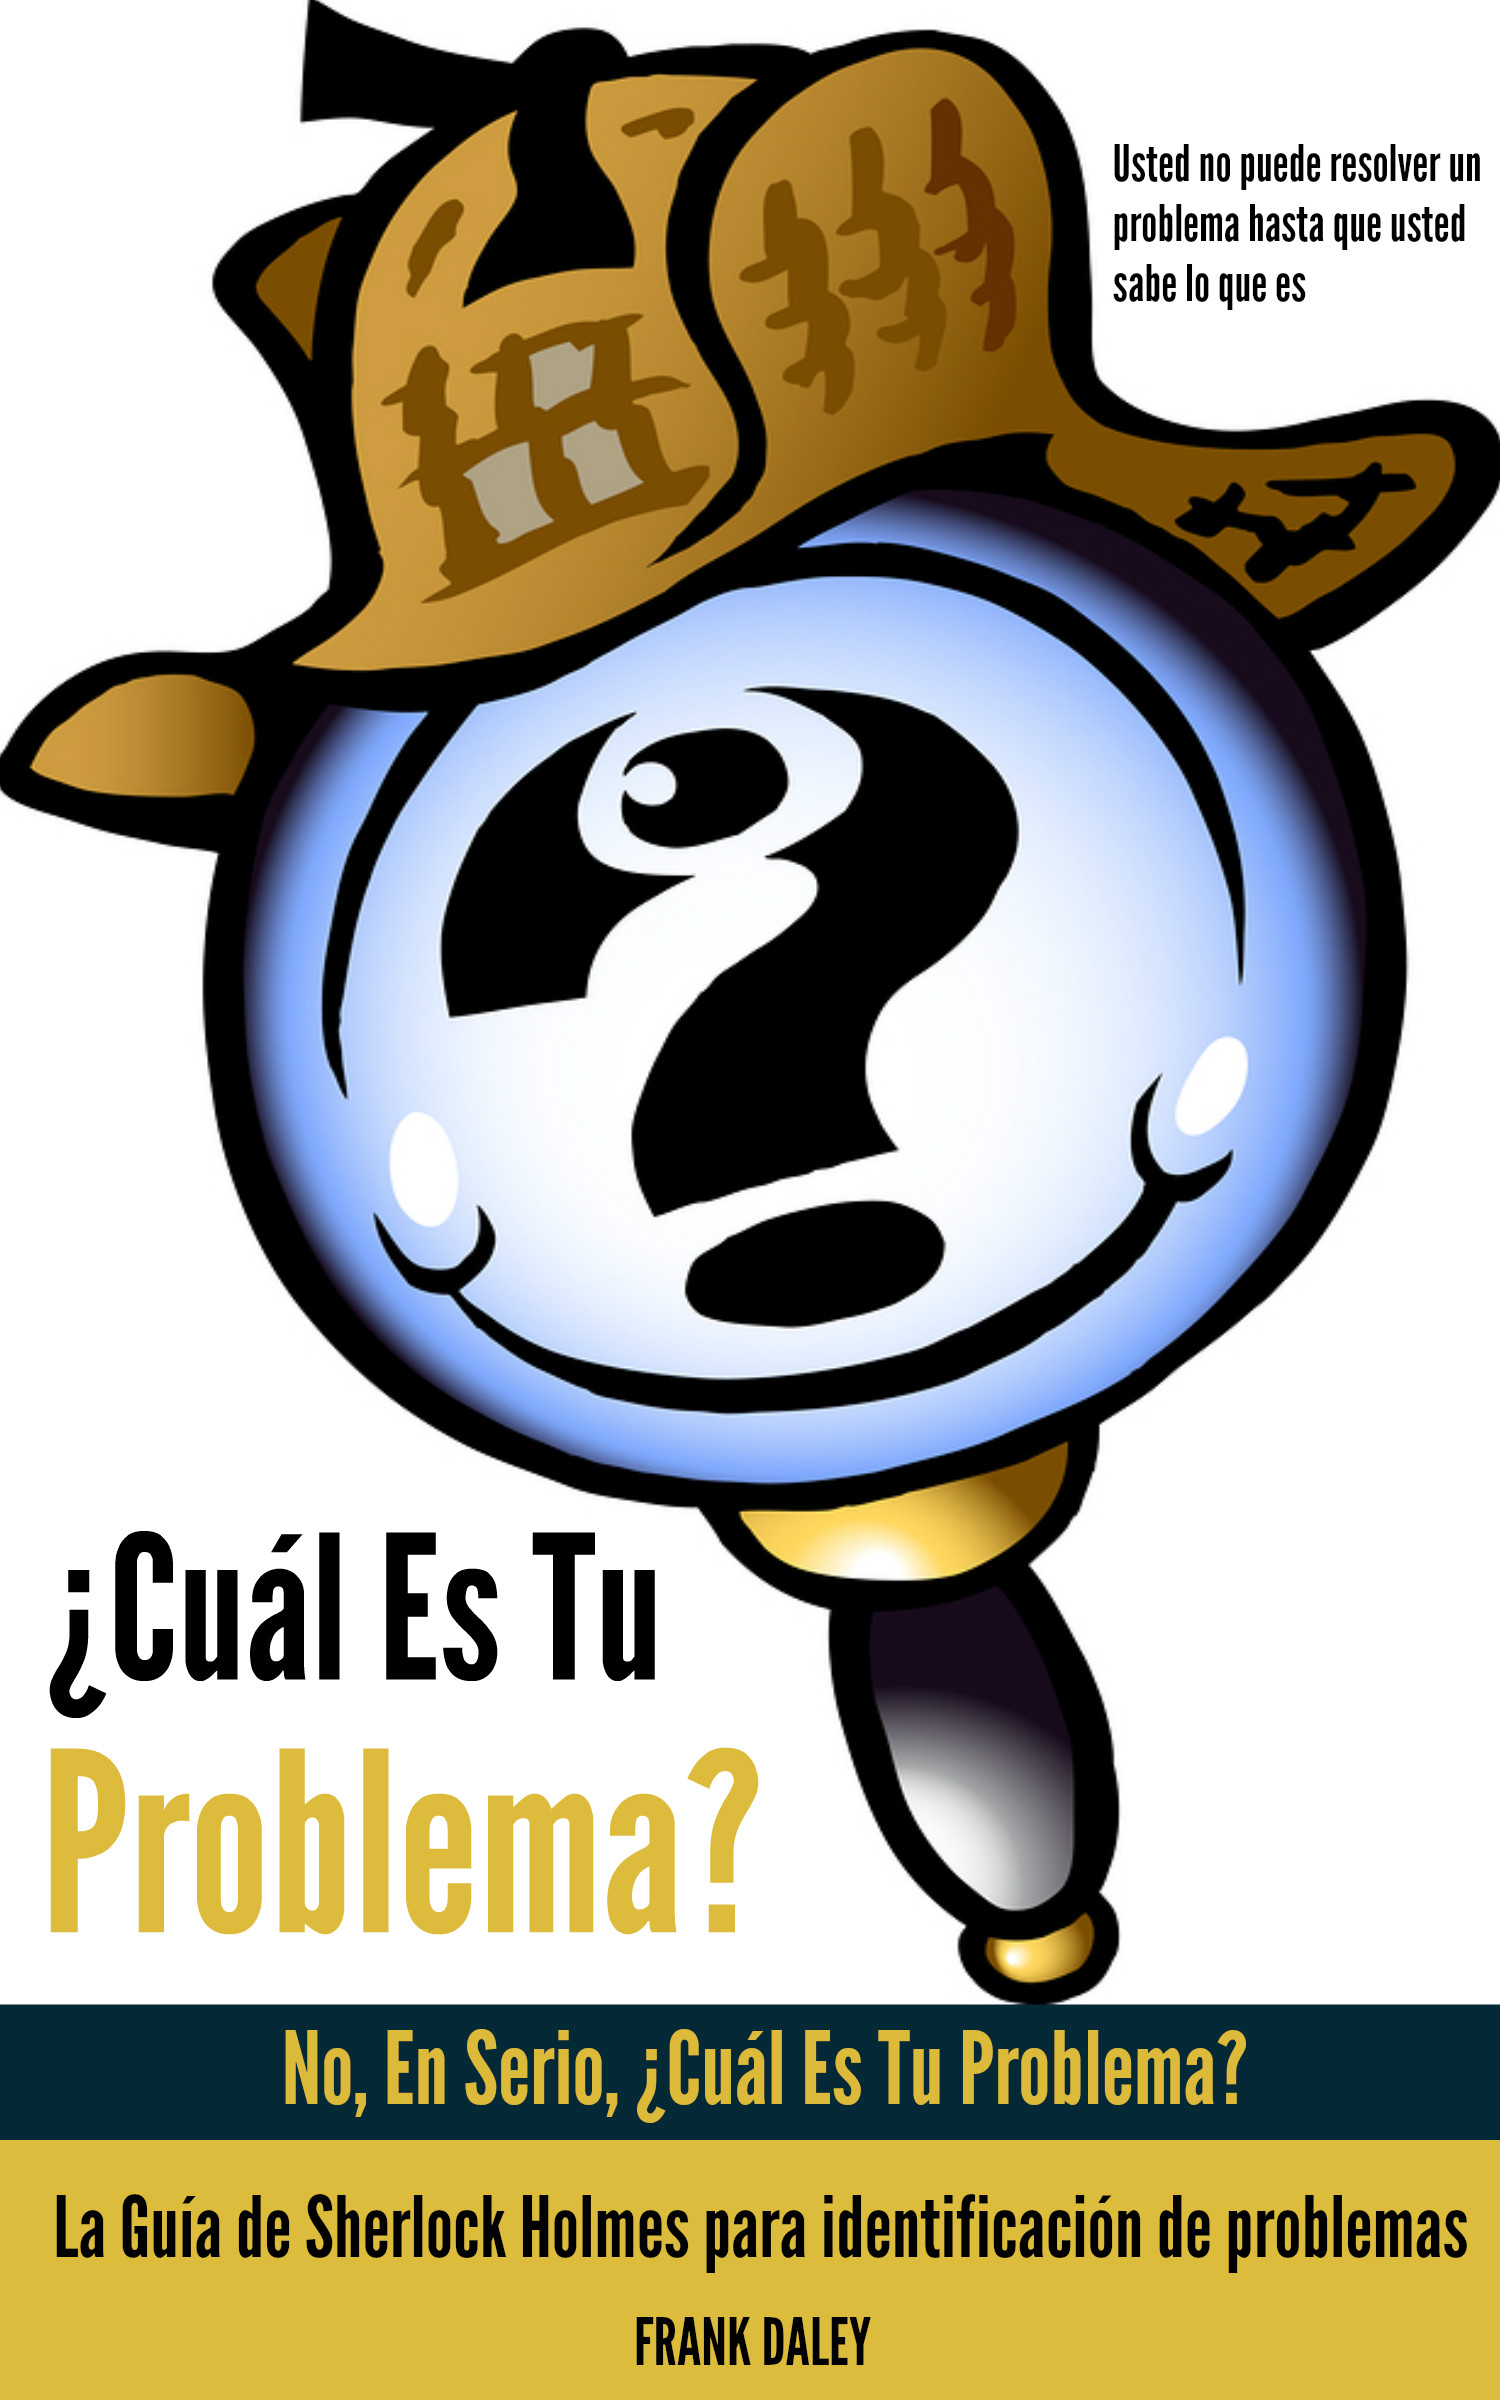 Sherlock Holmes clipart problem solving Cover Archives PROBLEM Daley WYP